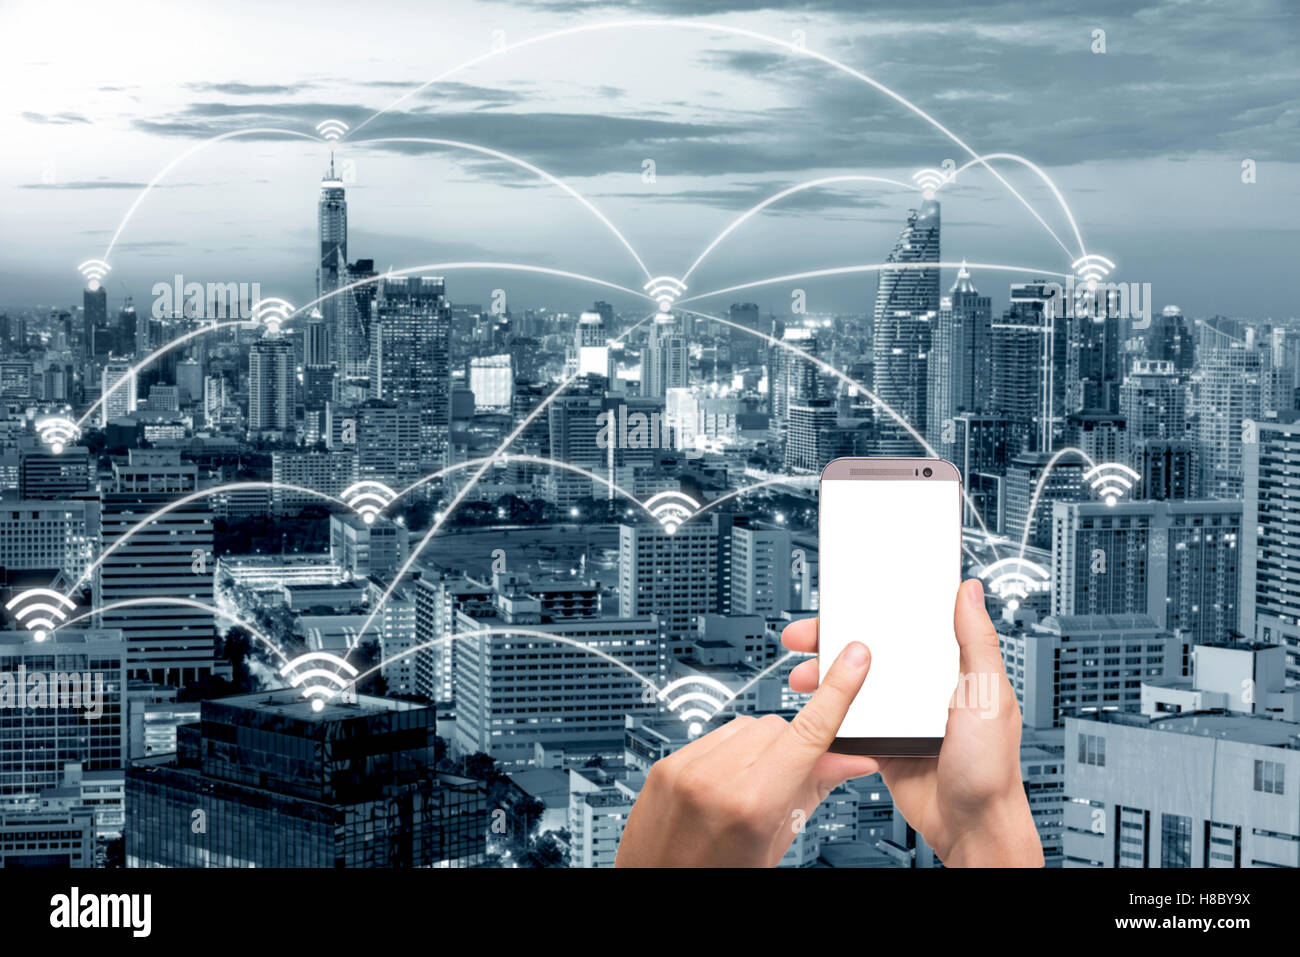 Wifi icon and Bangkok city with network connection concept, Shanghai smart city and wireless communication network, - Stock Image